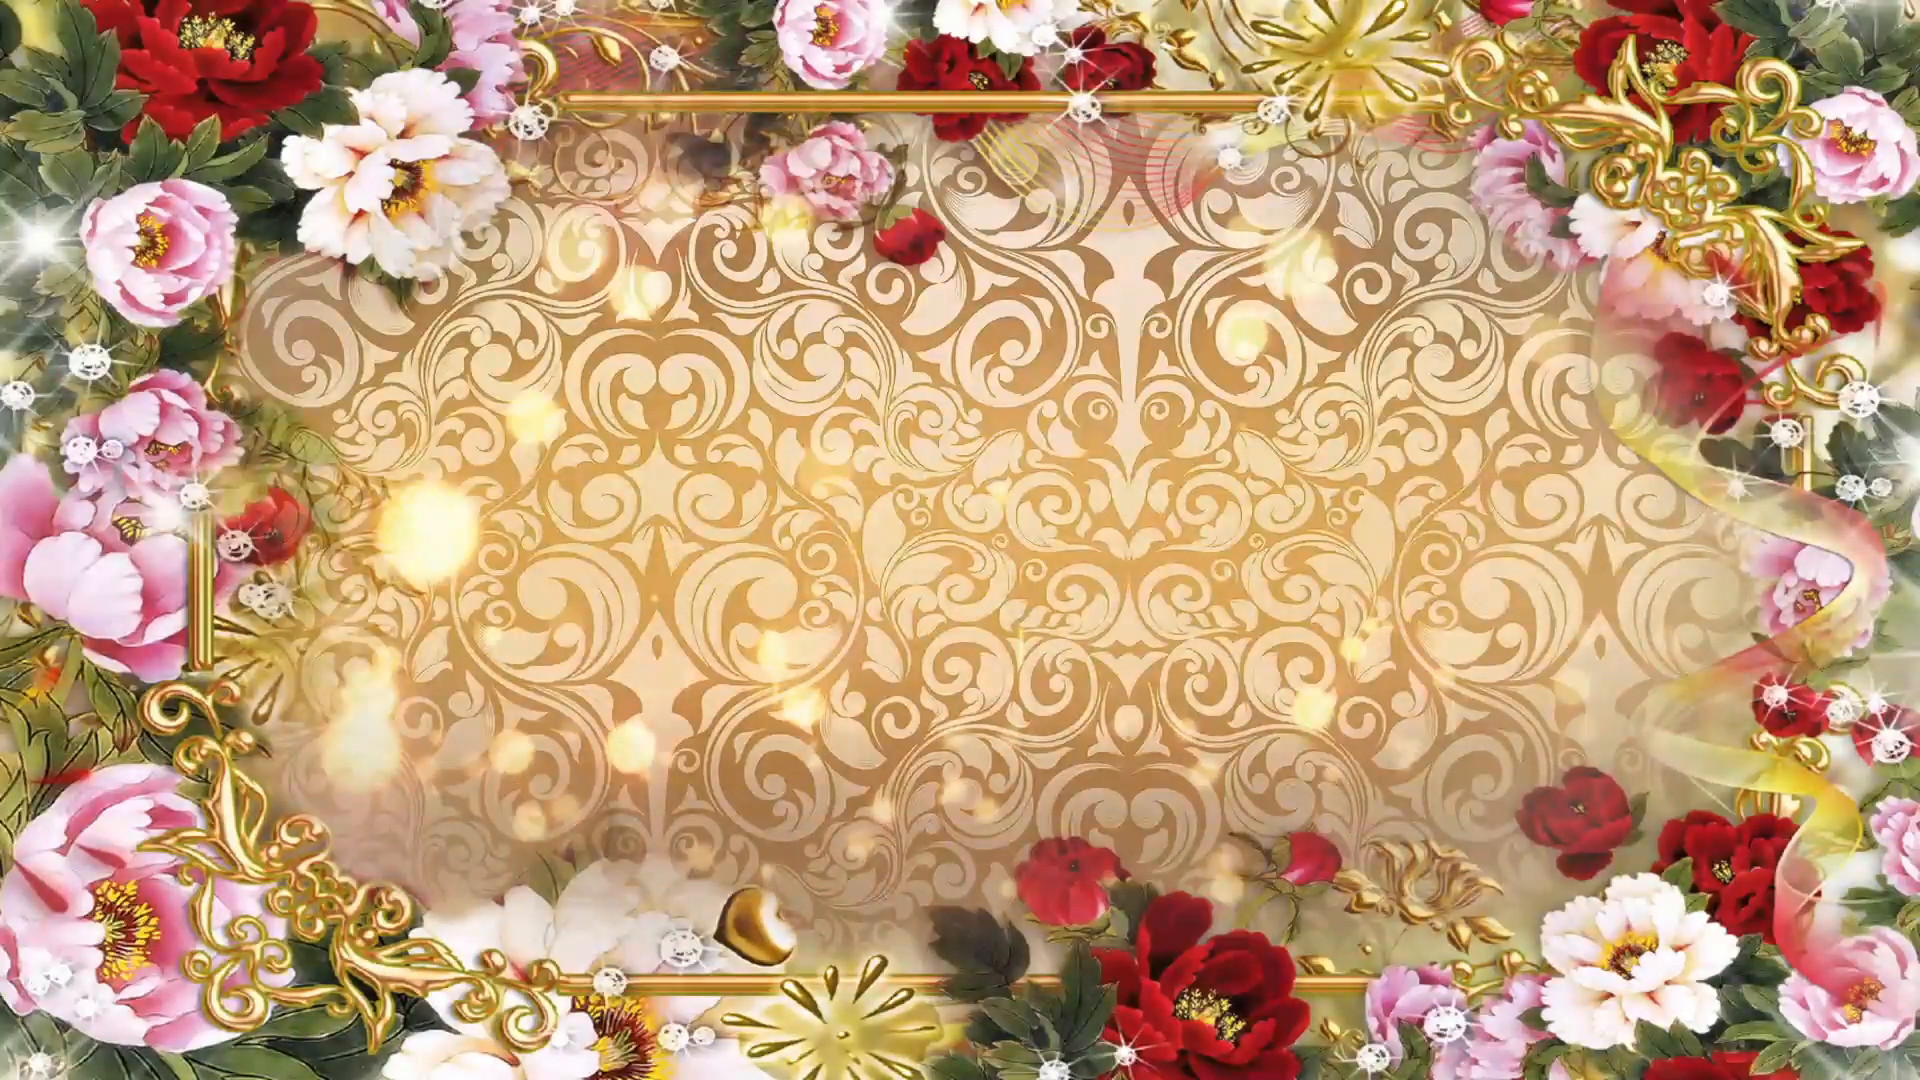 Wedding background images 60 images 1920x1080 multicolored flowers abstract wedding background 06 stock video footage videoblocks voltagebd Gallery